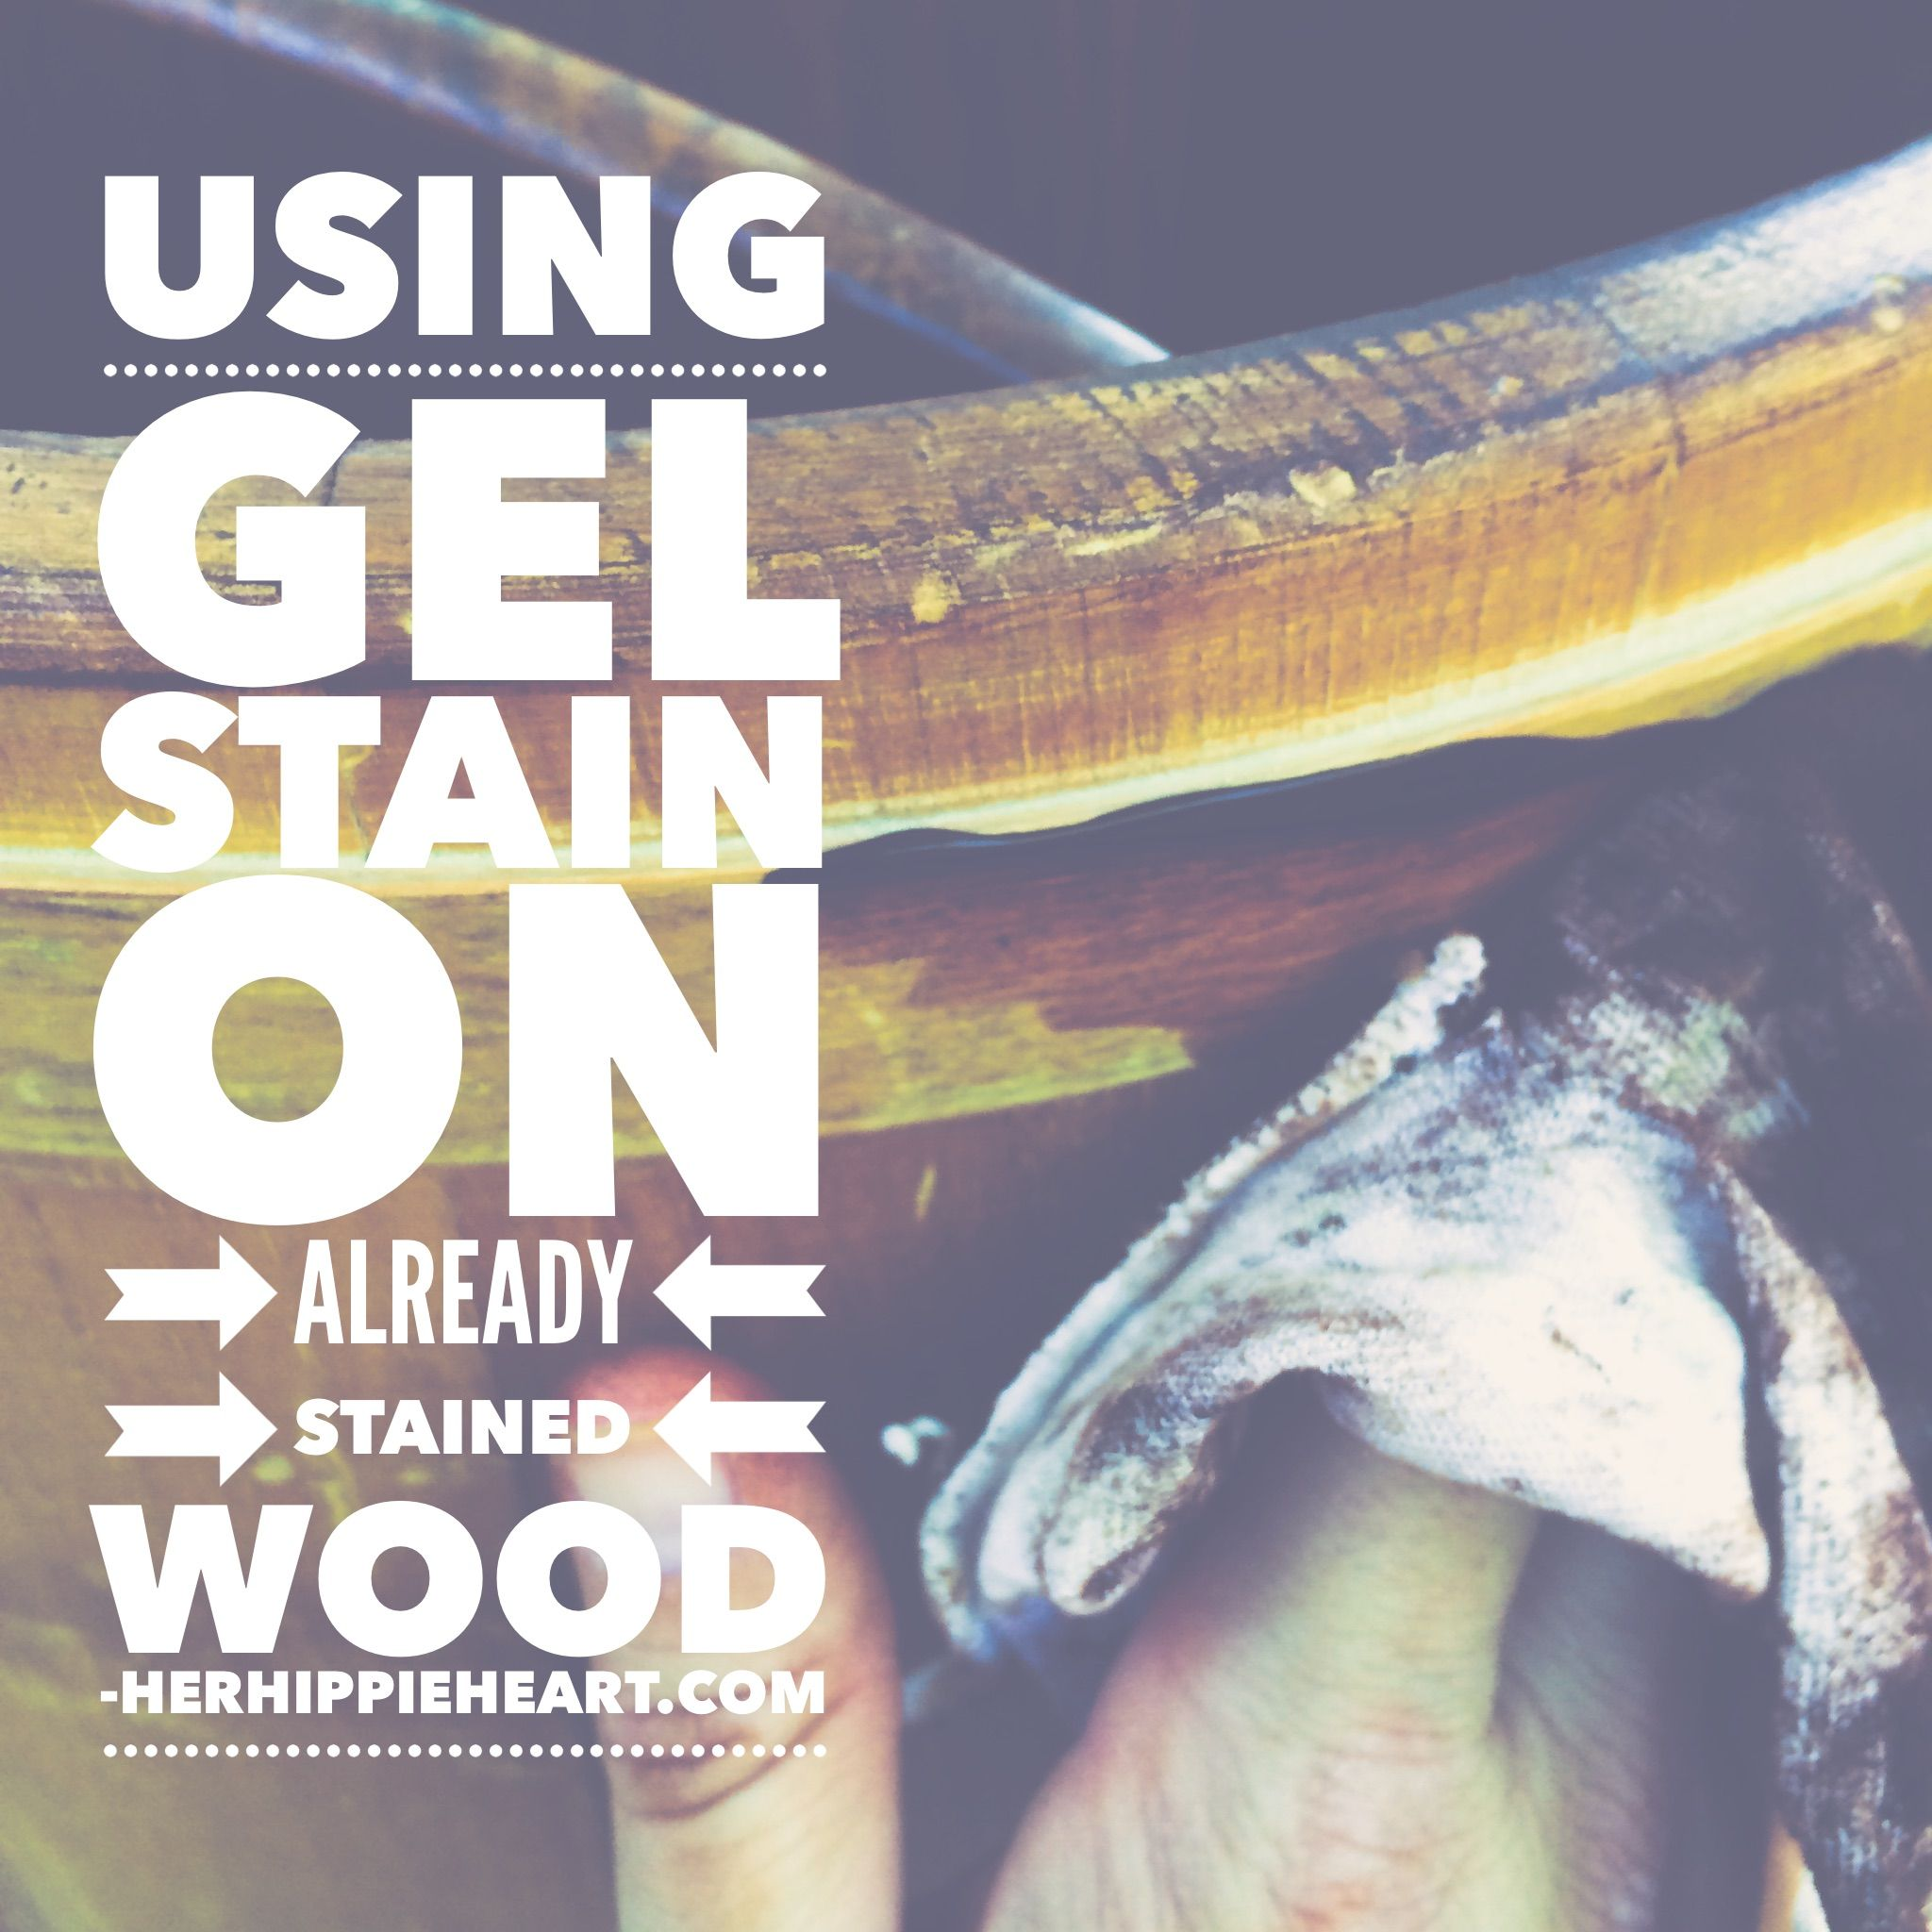 Using Gel Stain On Already Stained Wood